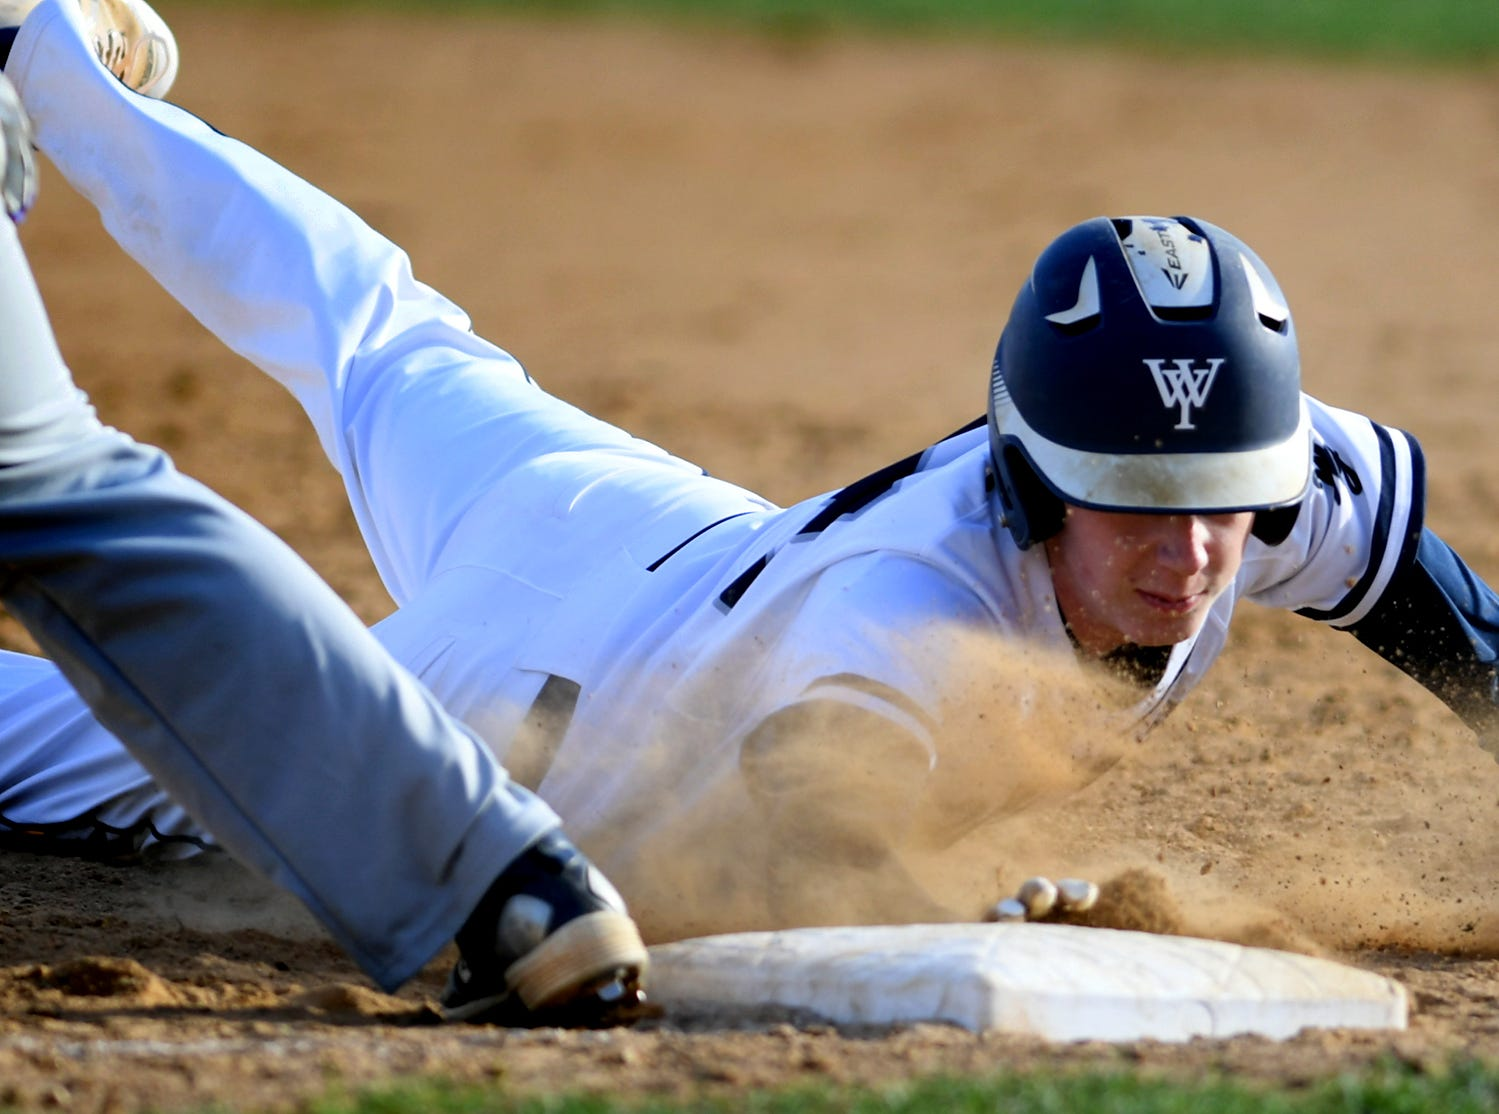 West York's Corey Wise gets back to first safely with York High's Dylan Rodriguez taking the throw during action at Shiloh Wednesday, April 10, 2019. Bill Kalina photo